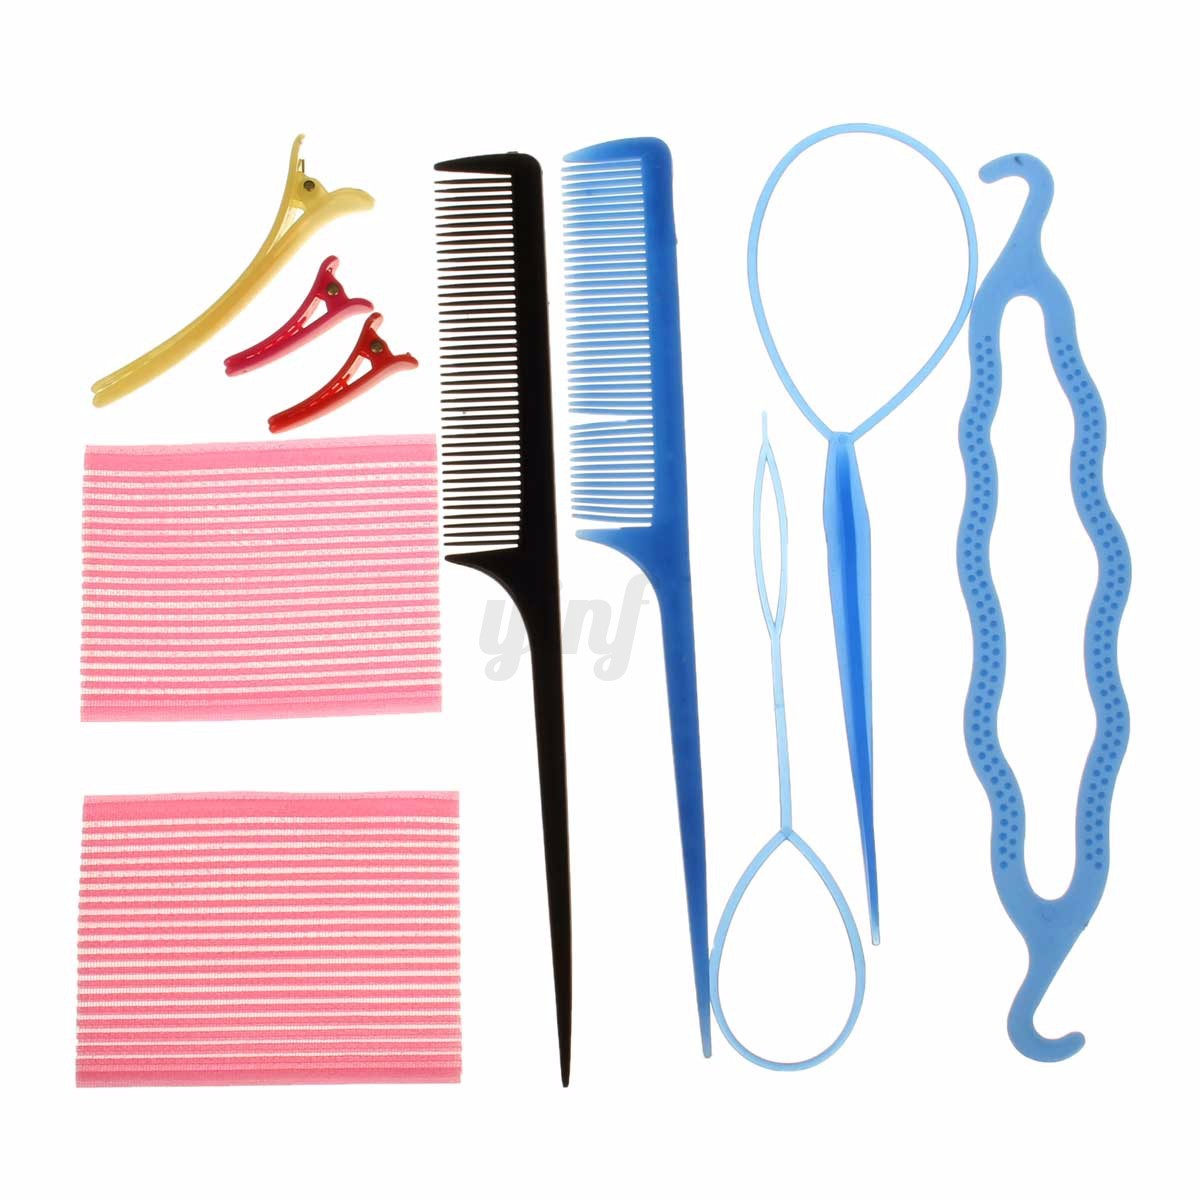 11 Style Braid Hair Clip Styling Maker Tool Pads Foam Sponge Bun Donut Hairpins